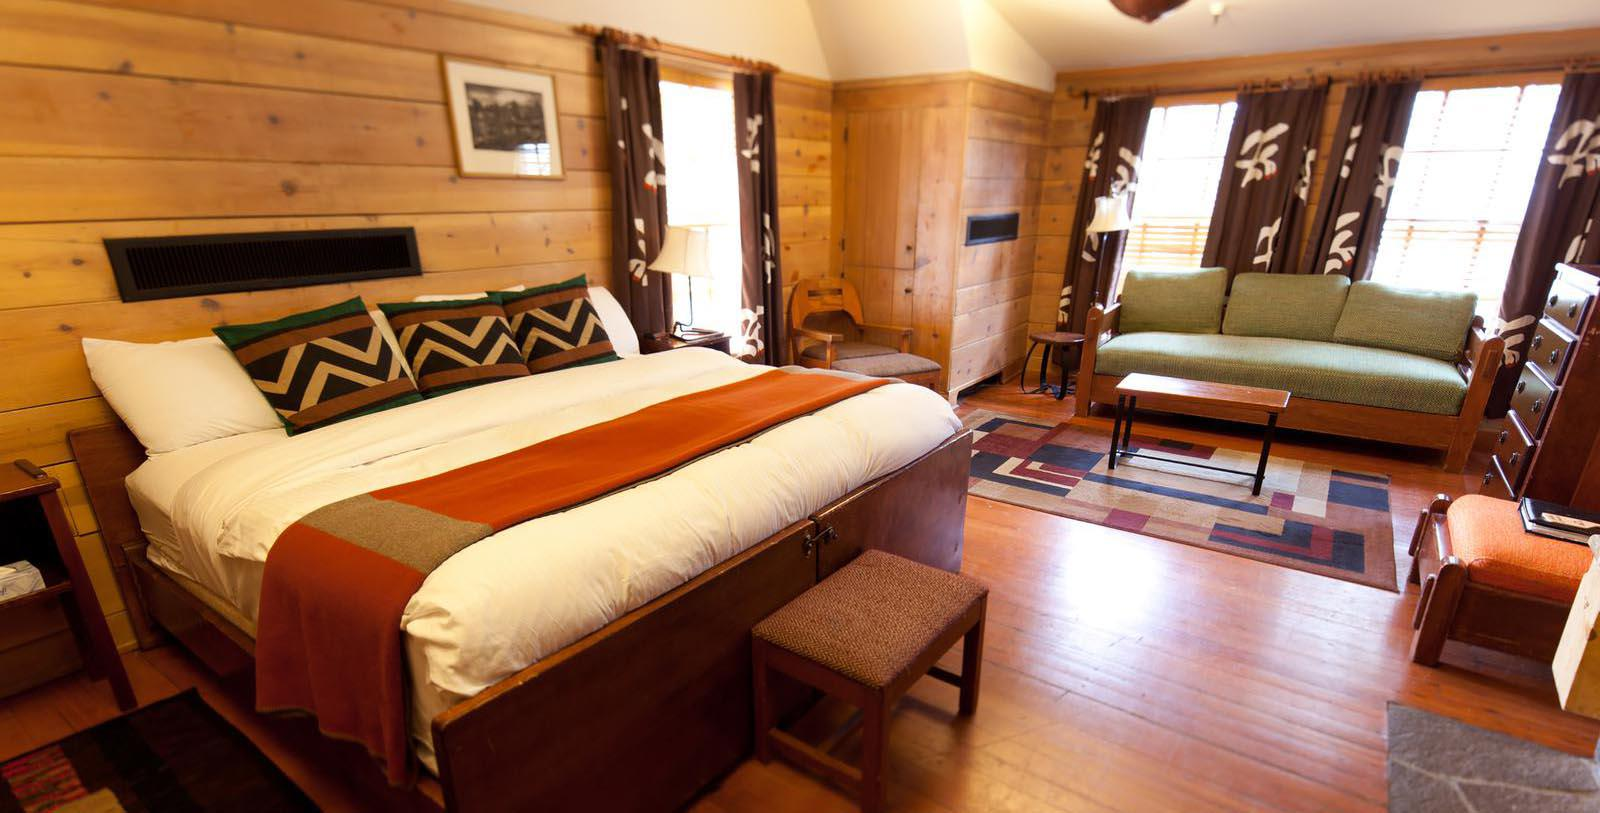 Image of guestroom Timberline Lodge, 1937, Member of Historic Hotels of America, in Timberline, Oregon, Location Map